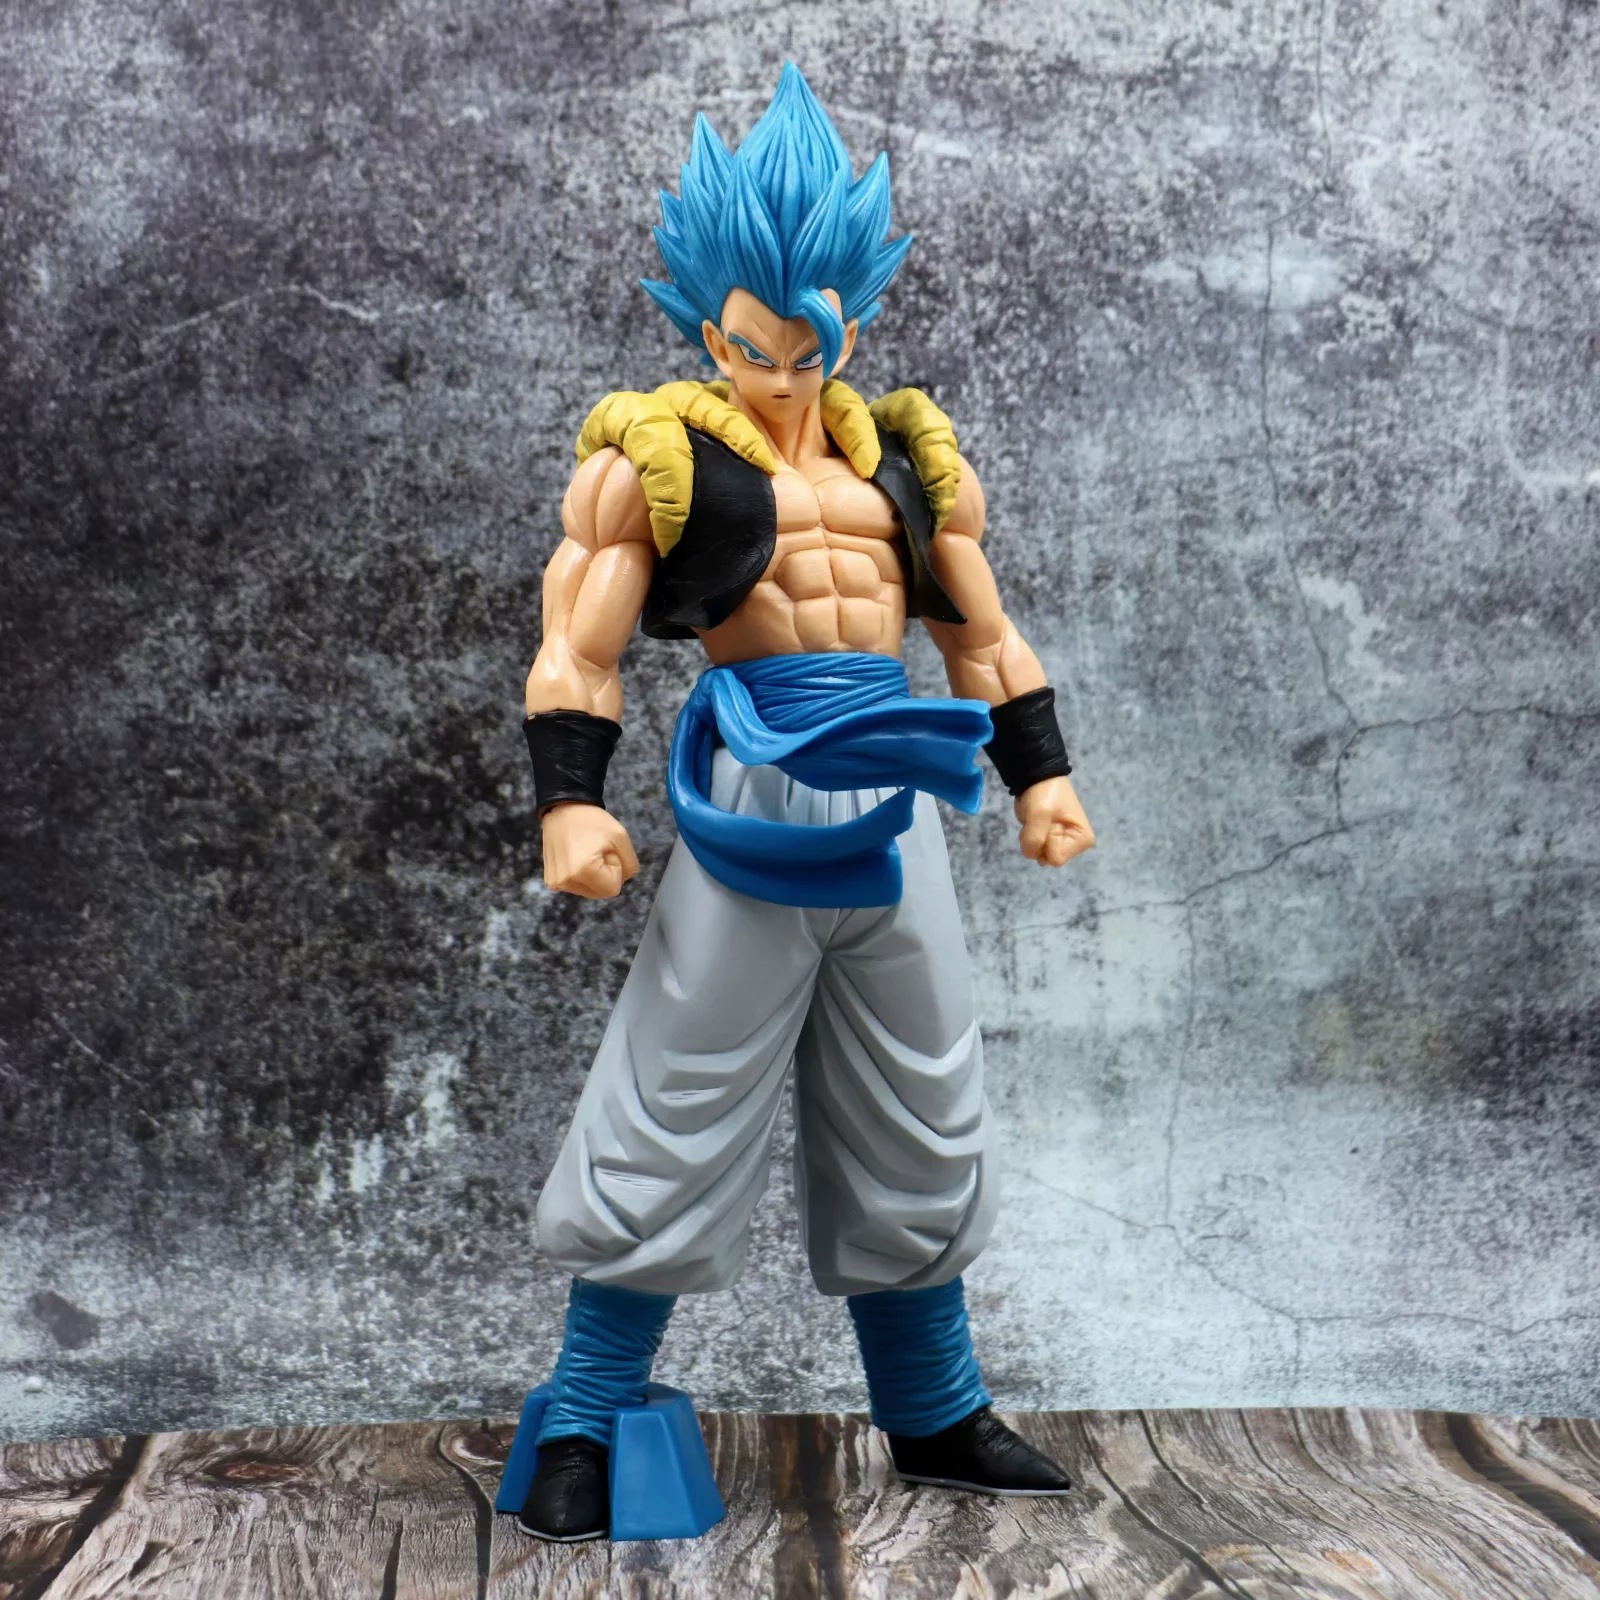 Anime 32cm Dragon Ball Super GROS Grandista ROS Gogeta Blue hair PVC Action Figure Collection Model Toys Gift